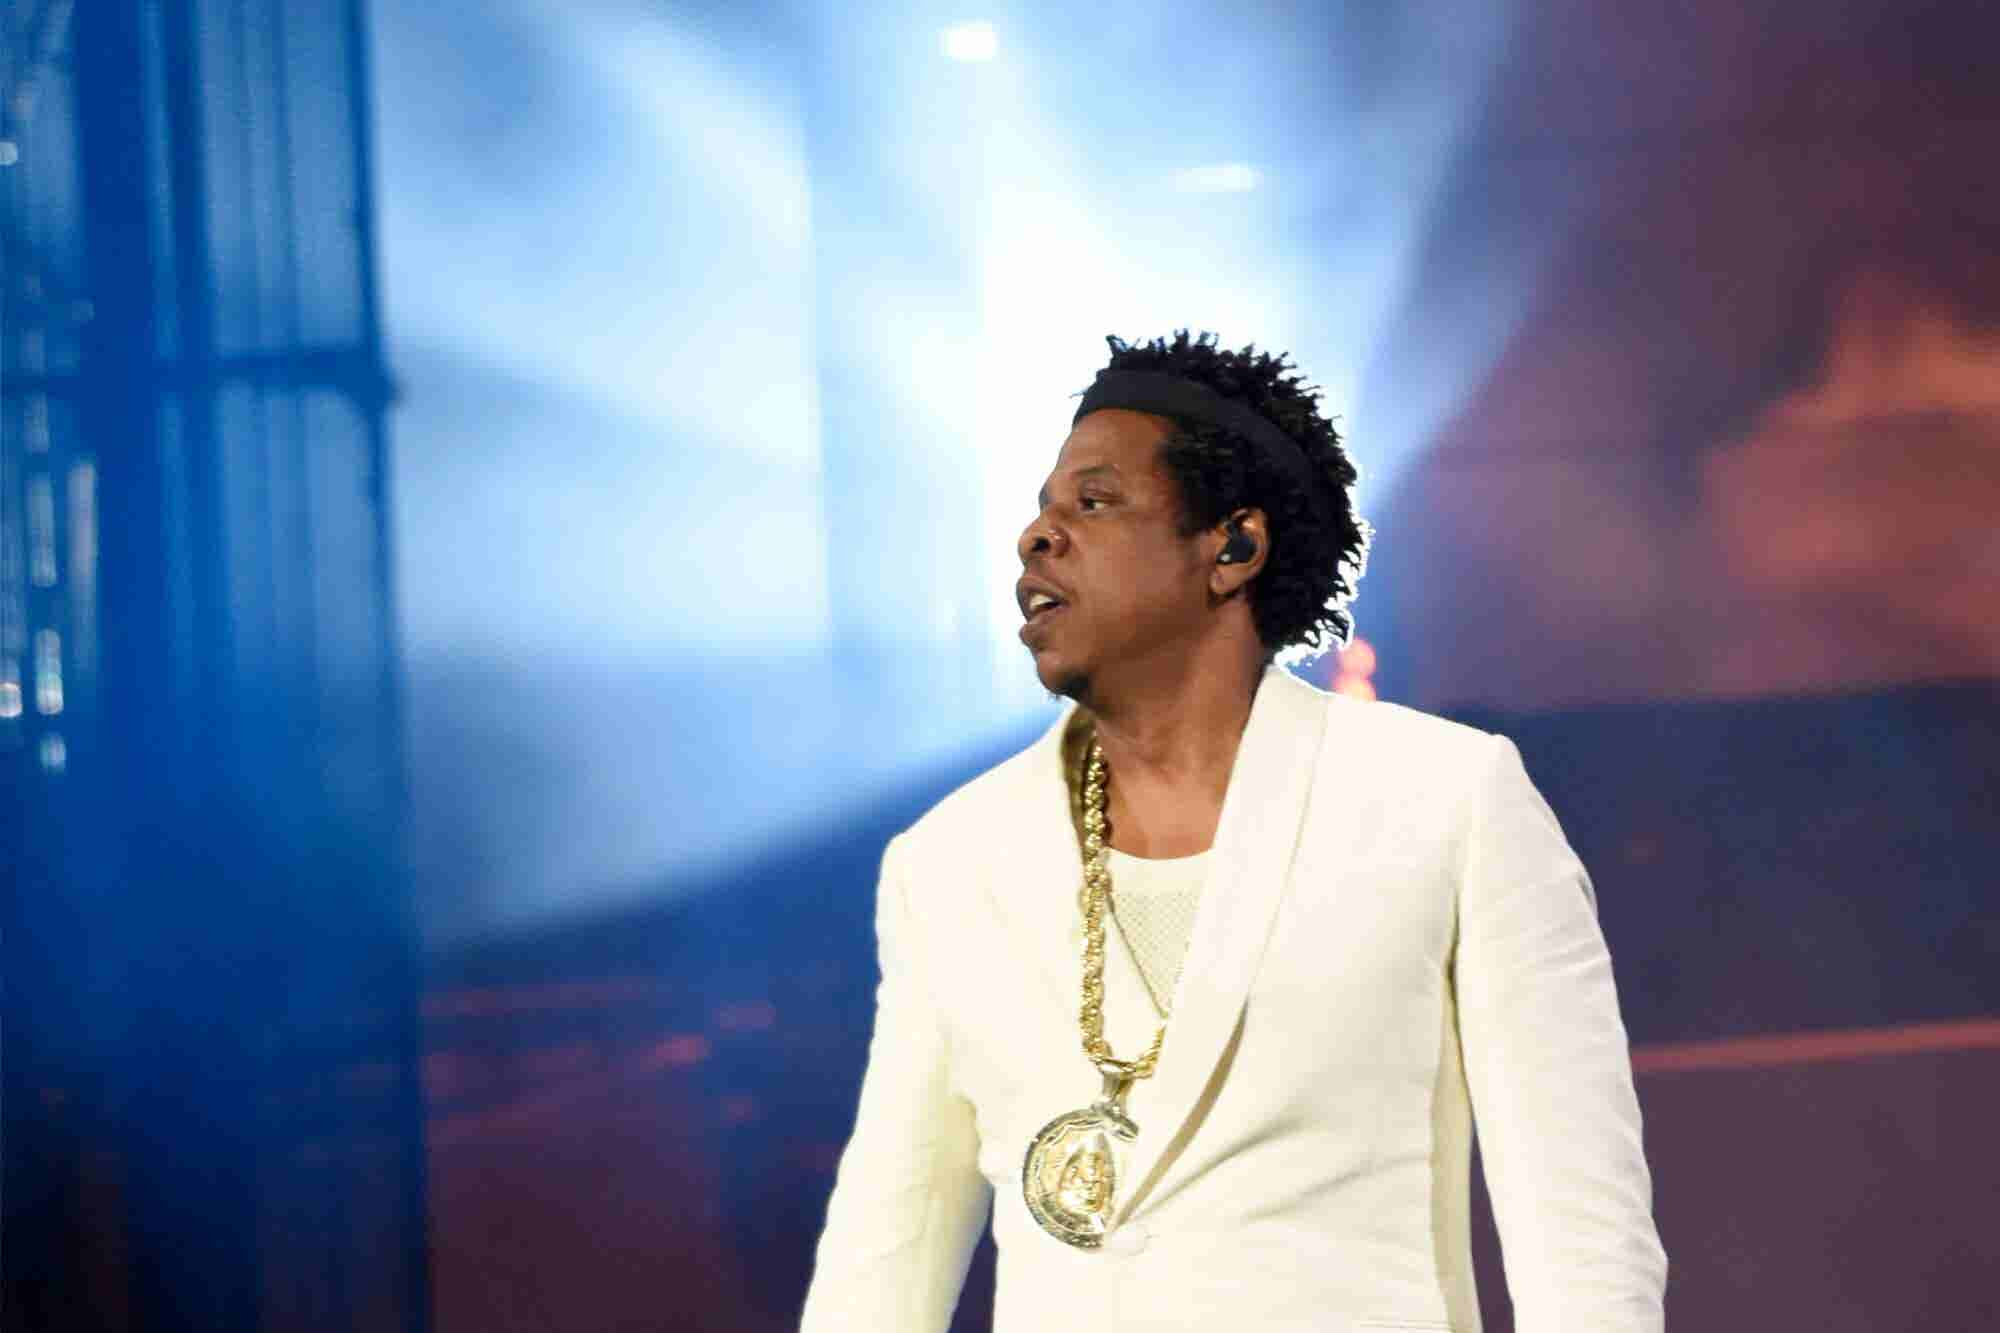 What Scandalized Companies Like Facebook and Uber Can Learn From Jay-Z